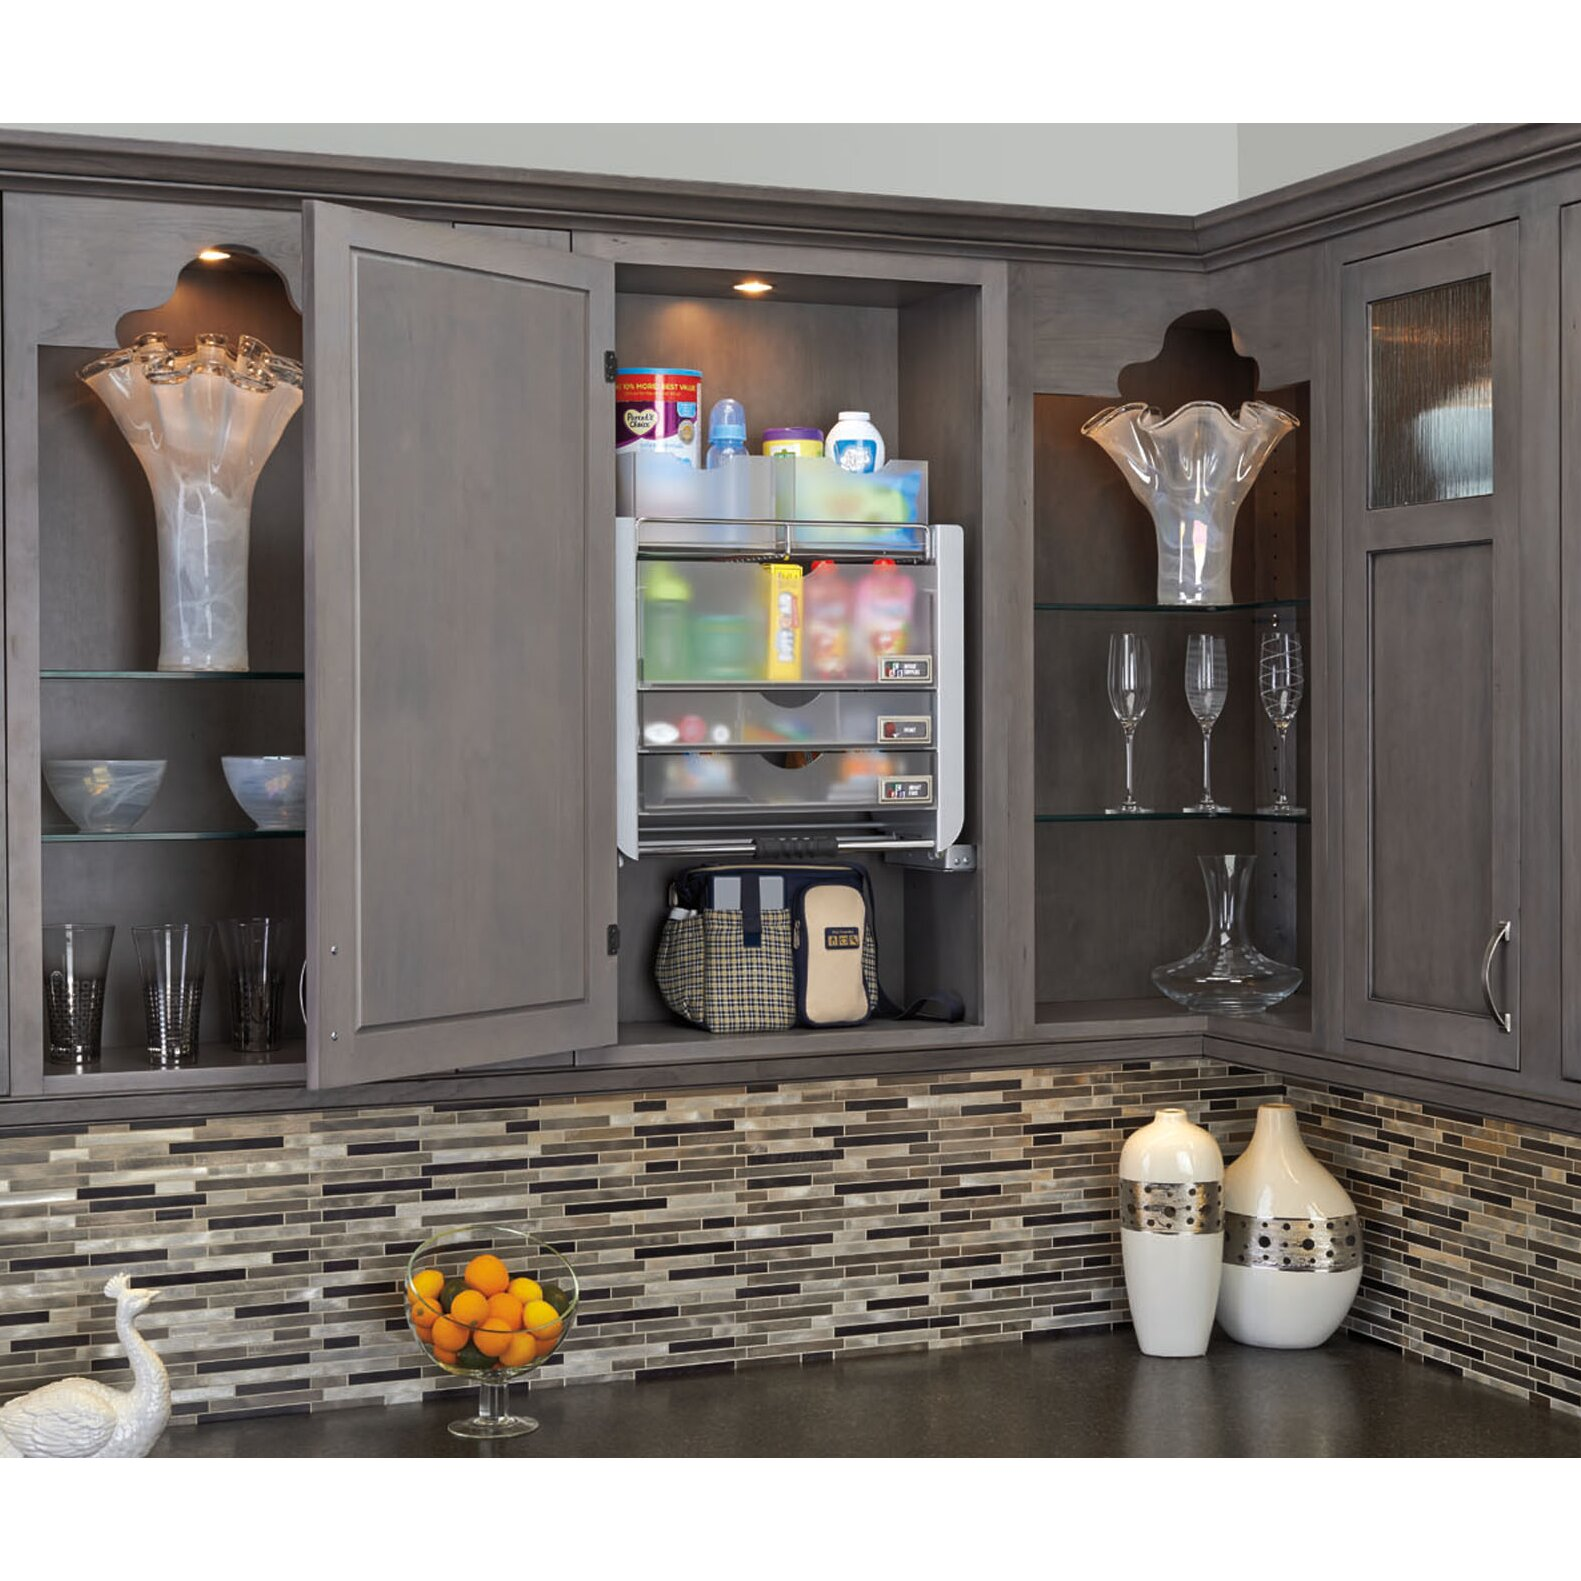 Pull Down Kitchen Cabinets: Rev-A-Shelf Universal Wall Cabinet Pull-Down Shelving